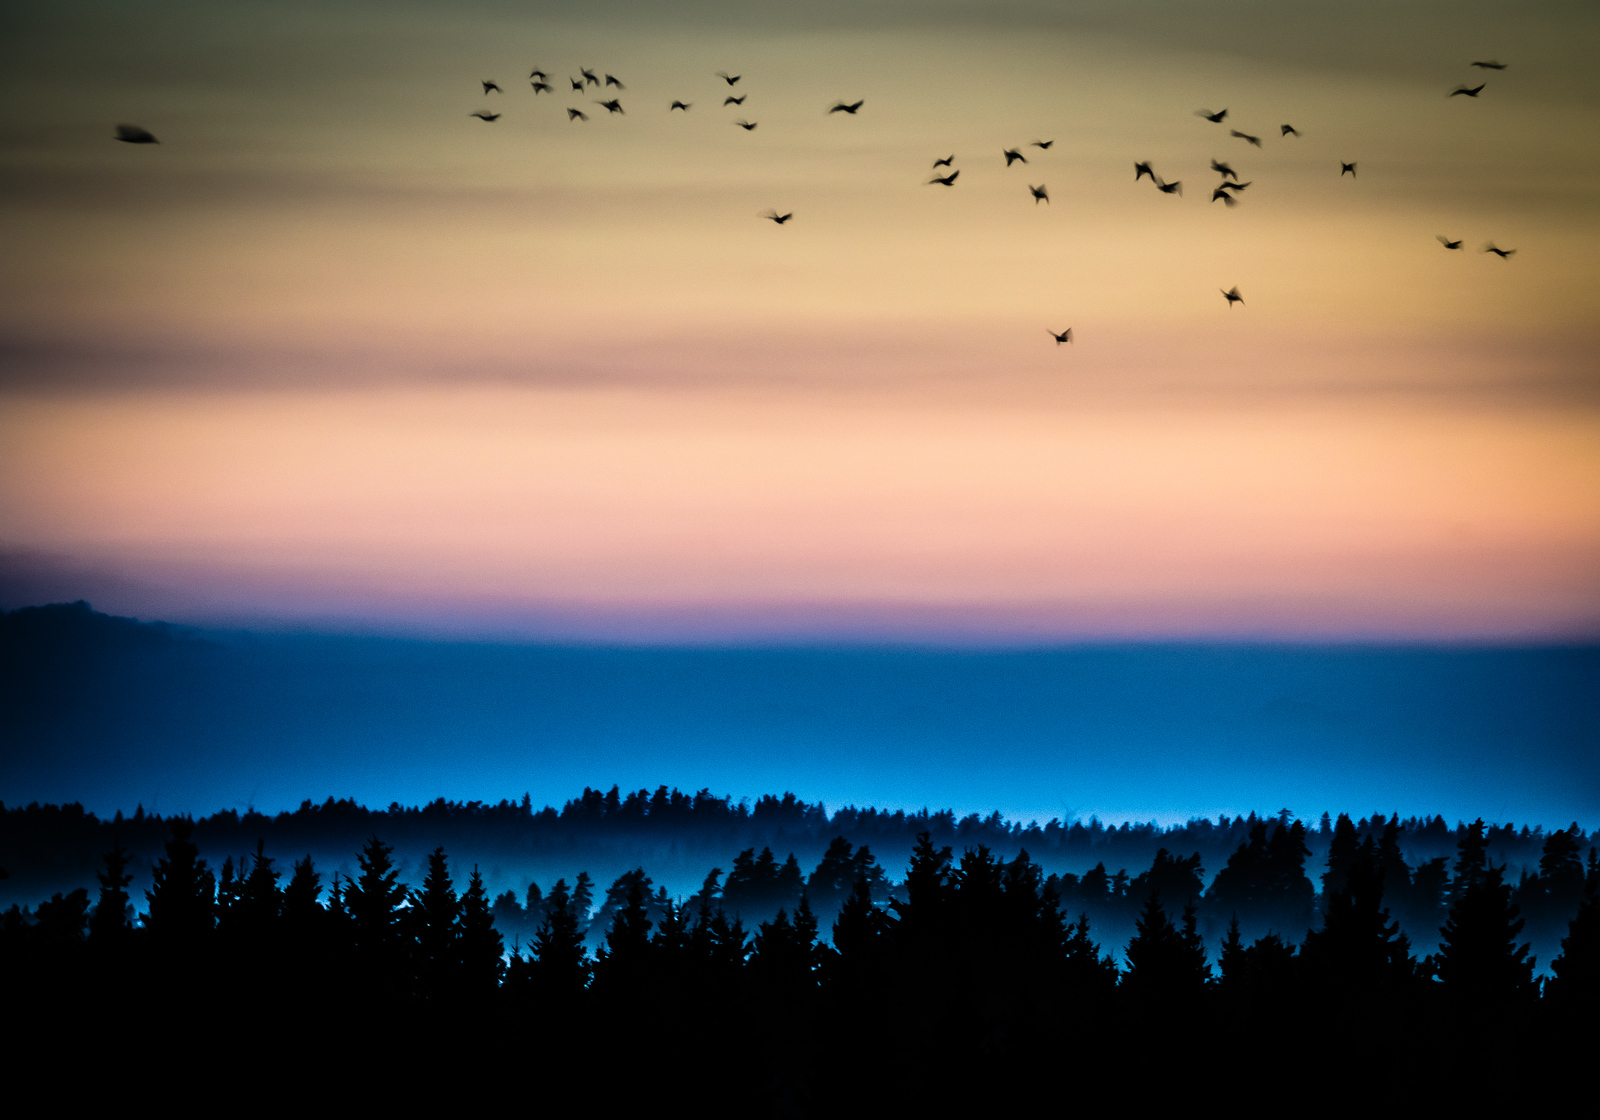 Taken with a telephoto lens over the forrest of Farsbo, Sweden after sunset.